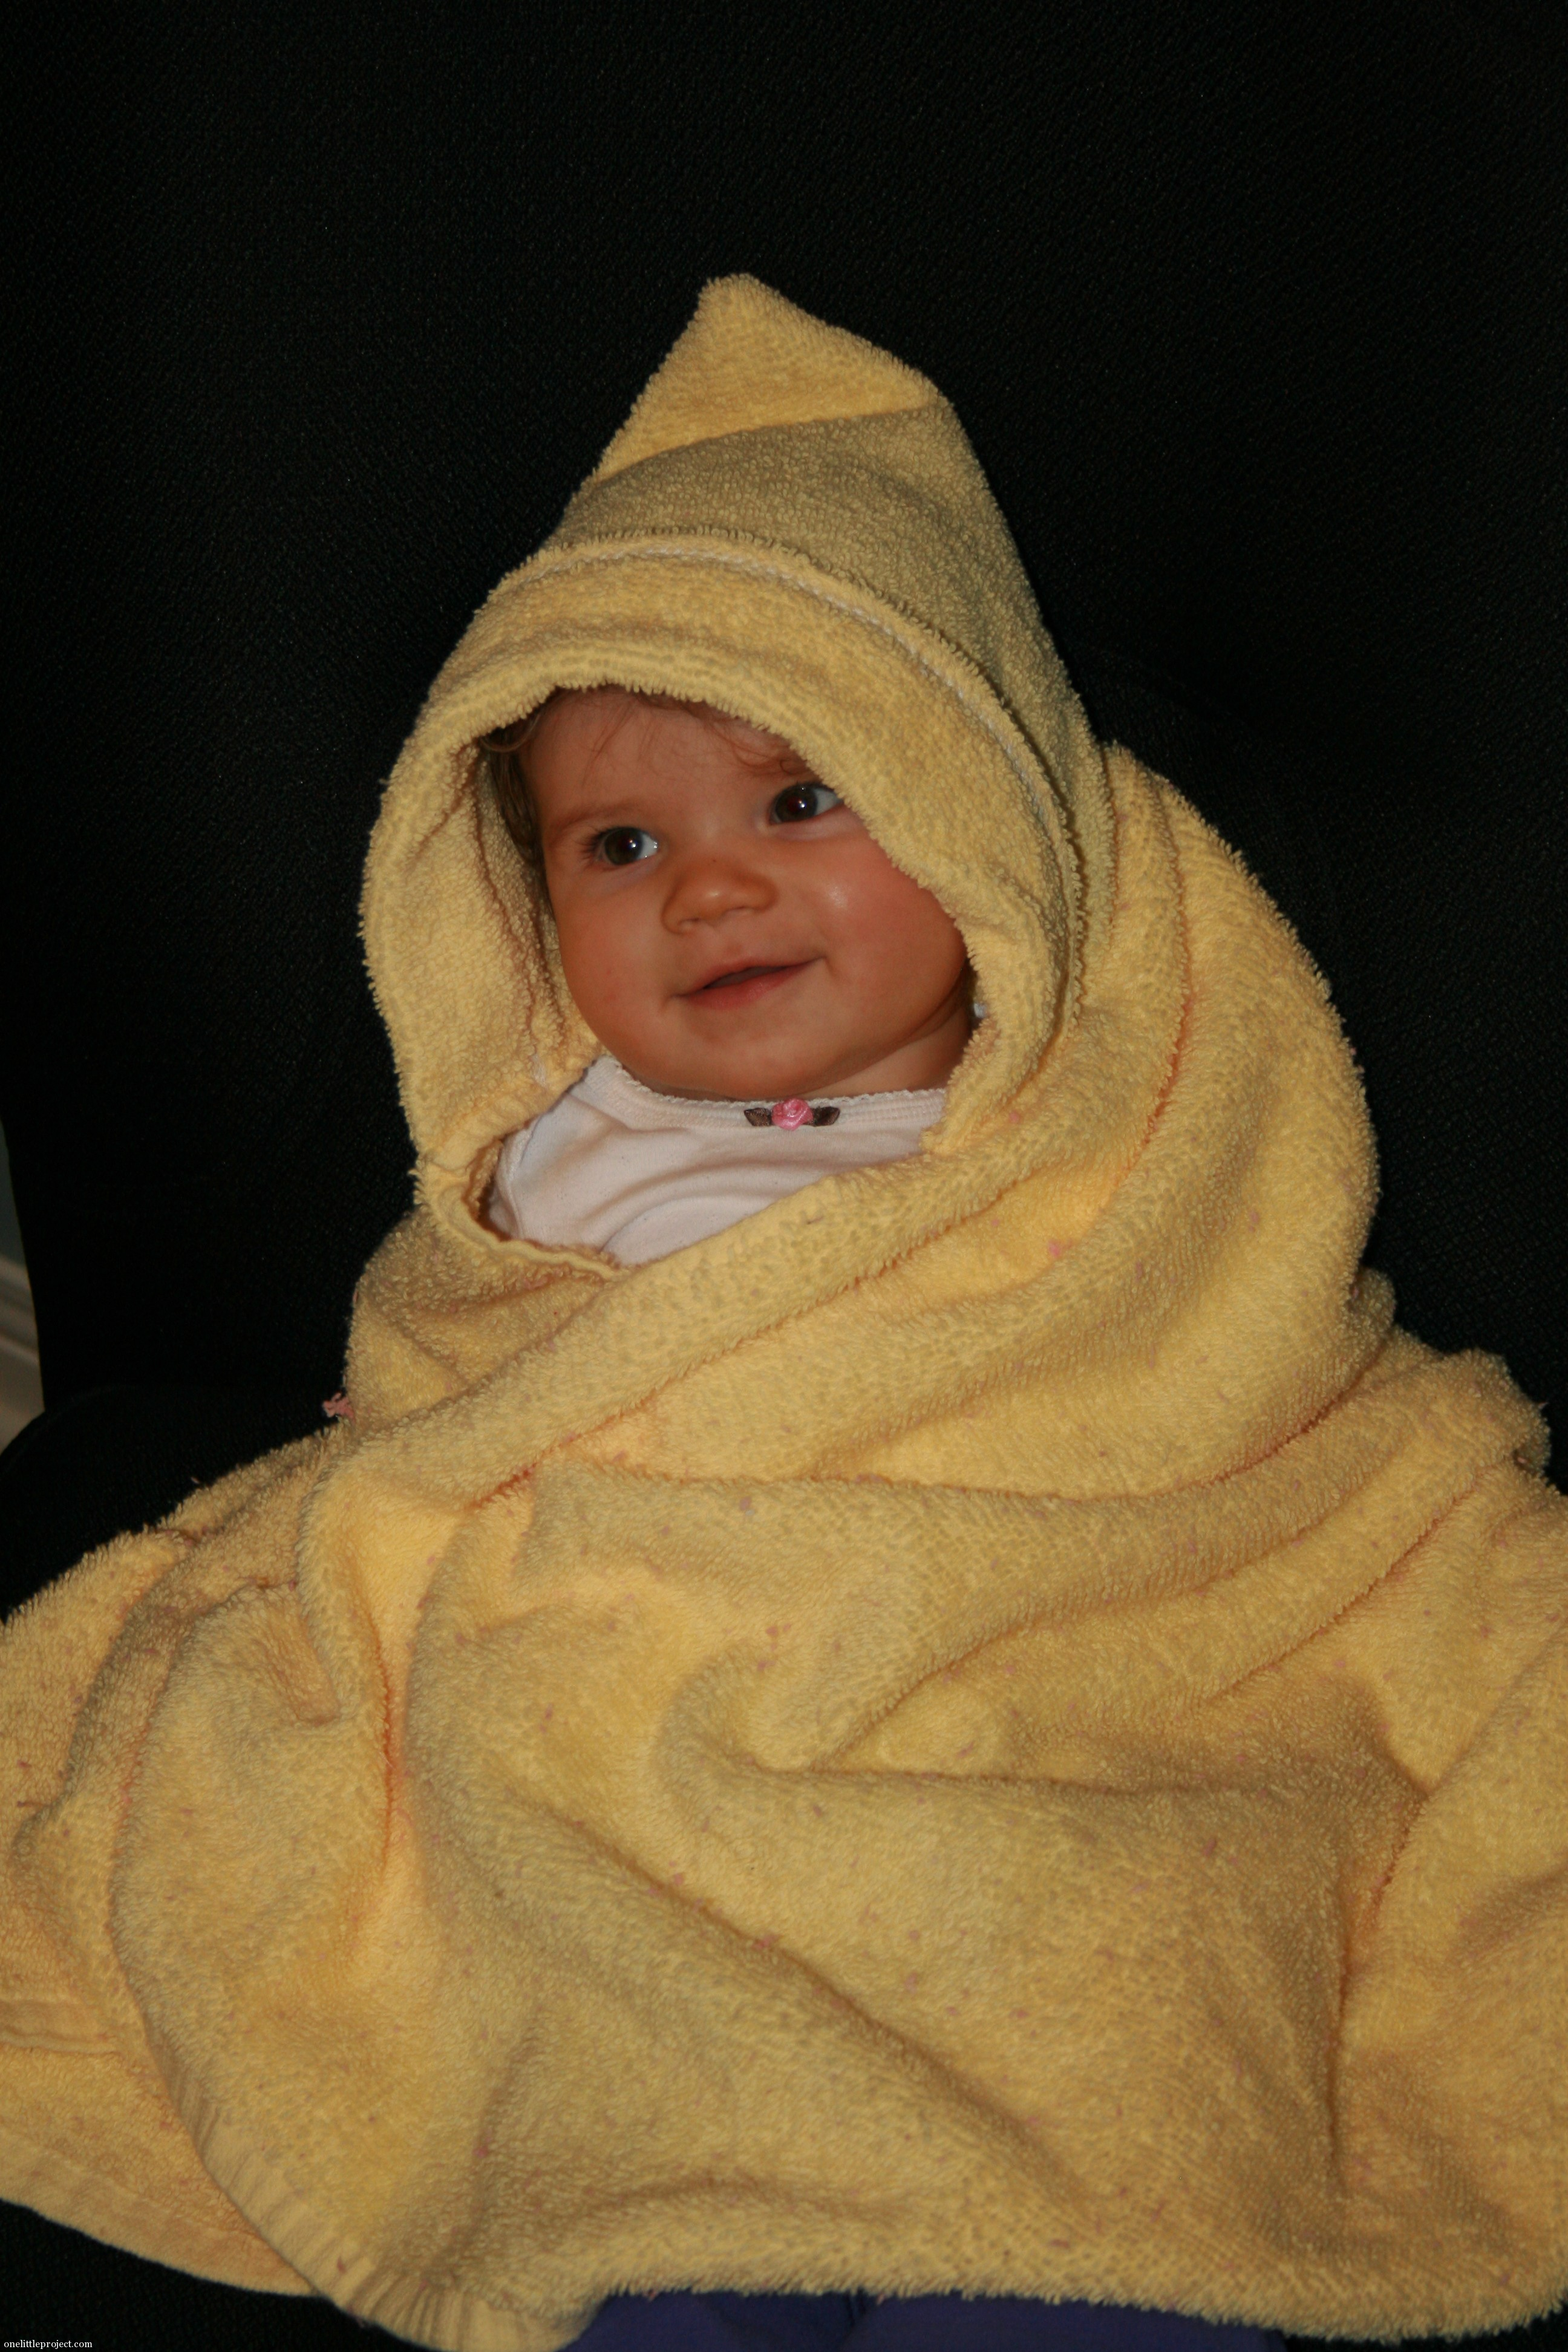 3 Ways To Make Your Own Hooded Towels Part 1